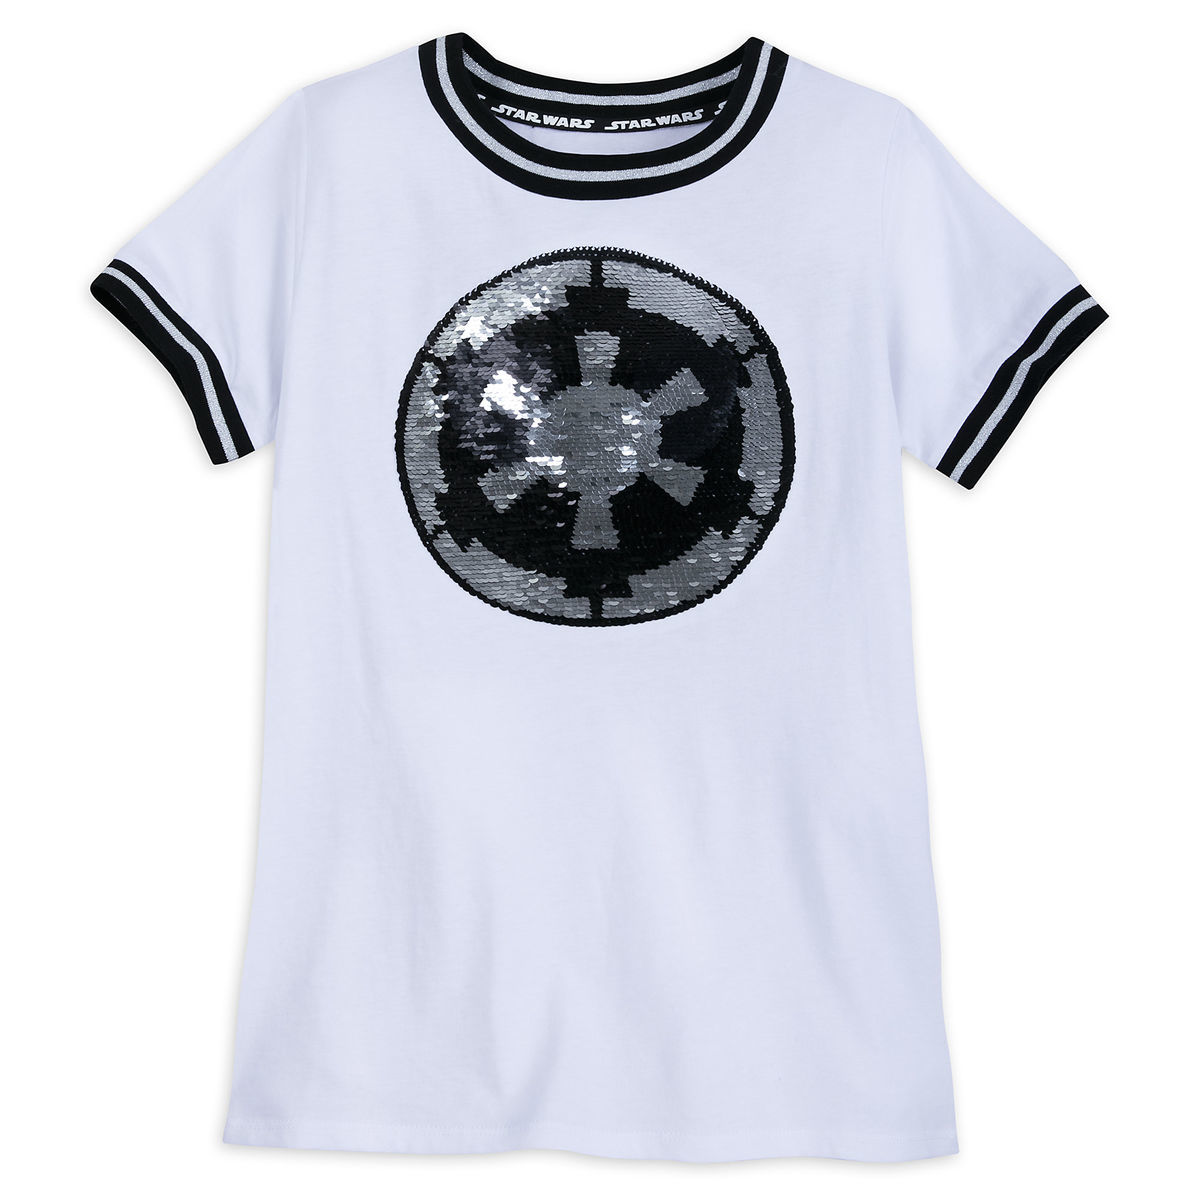 Disney Women's Shirt - Star Wars Reversible Sequin Rebel Galactic Symbol